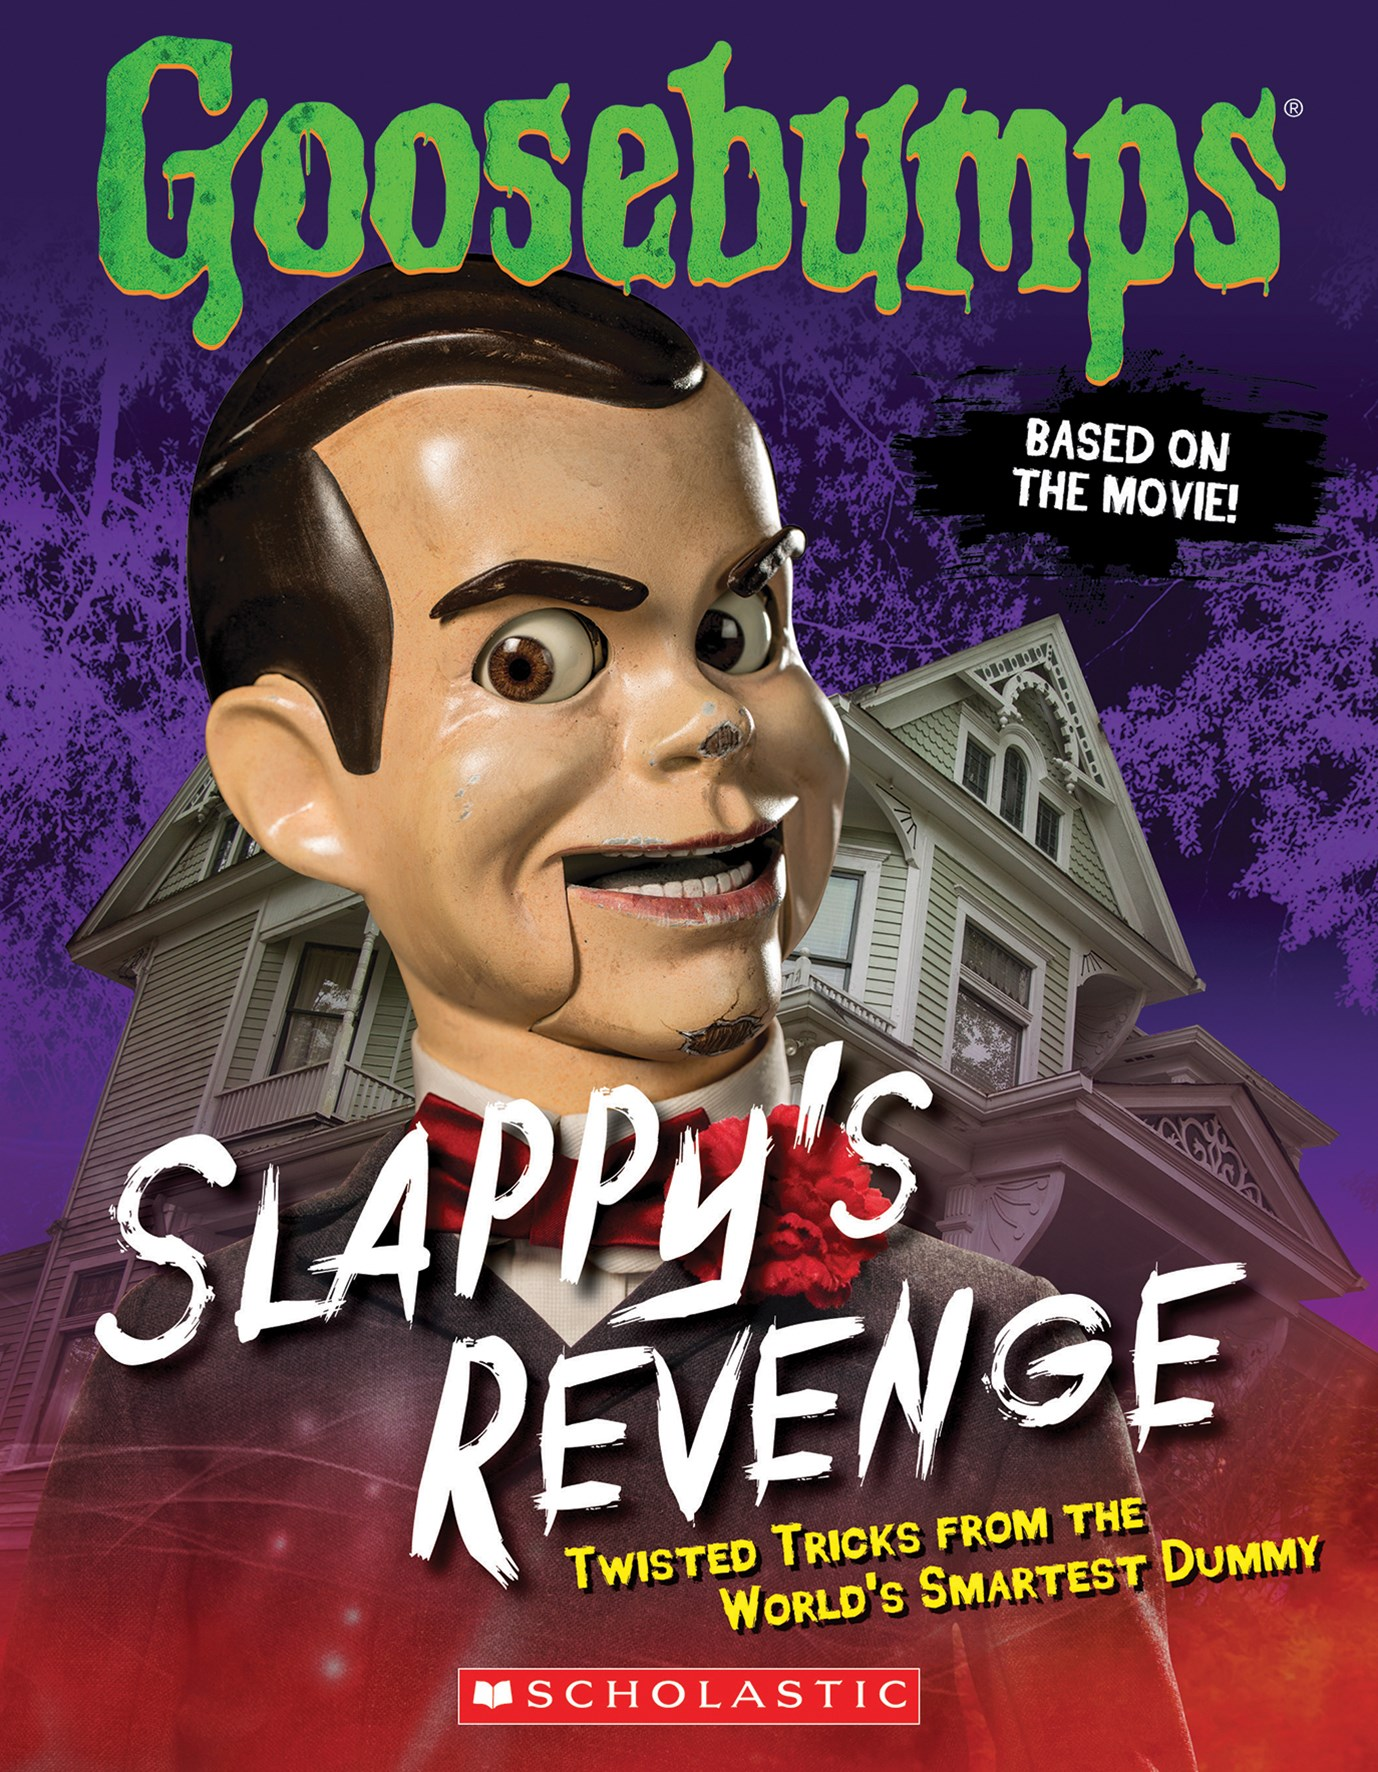 Goosebumps the Movie: Slappy's Revenge - Twisted Tricks from the World's Smartest Dummy